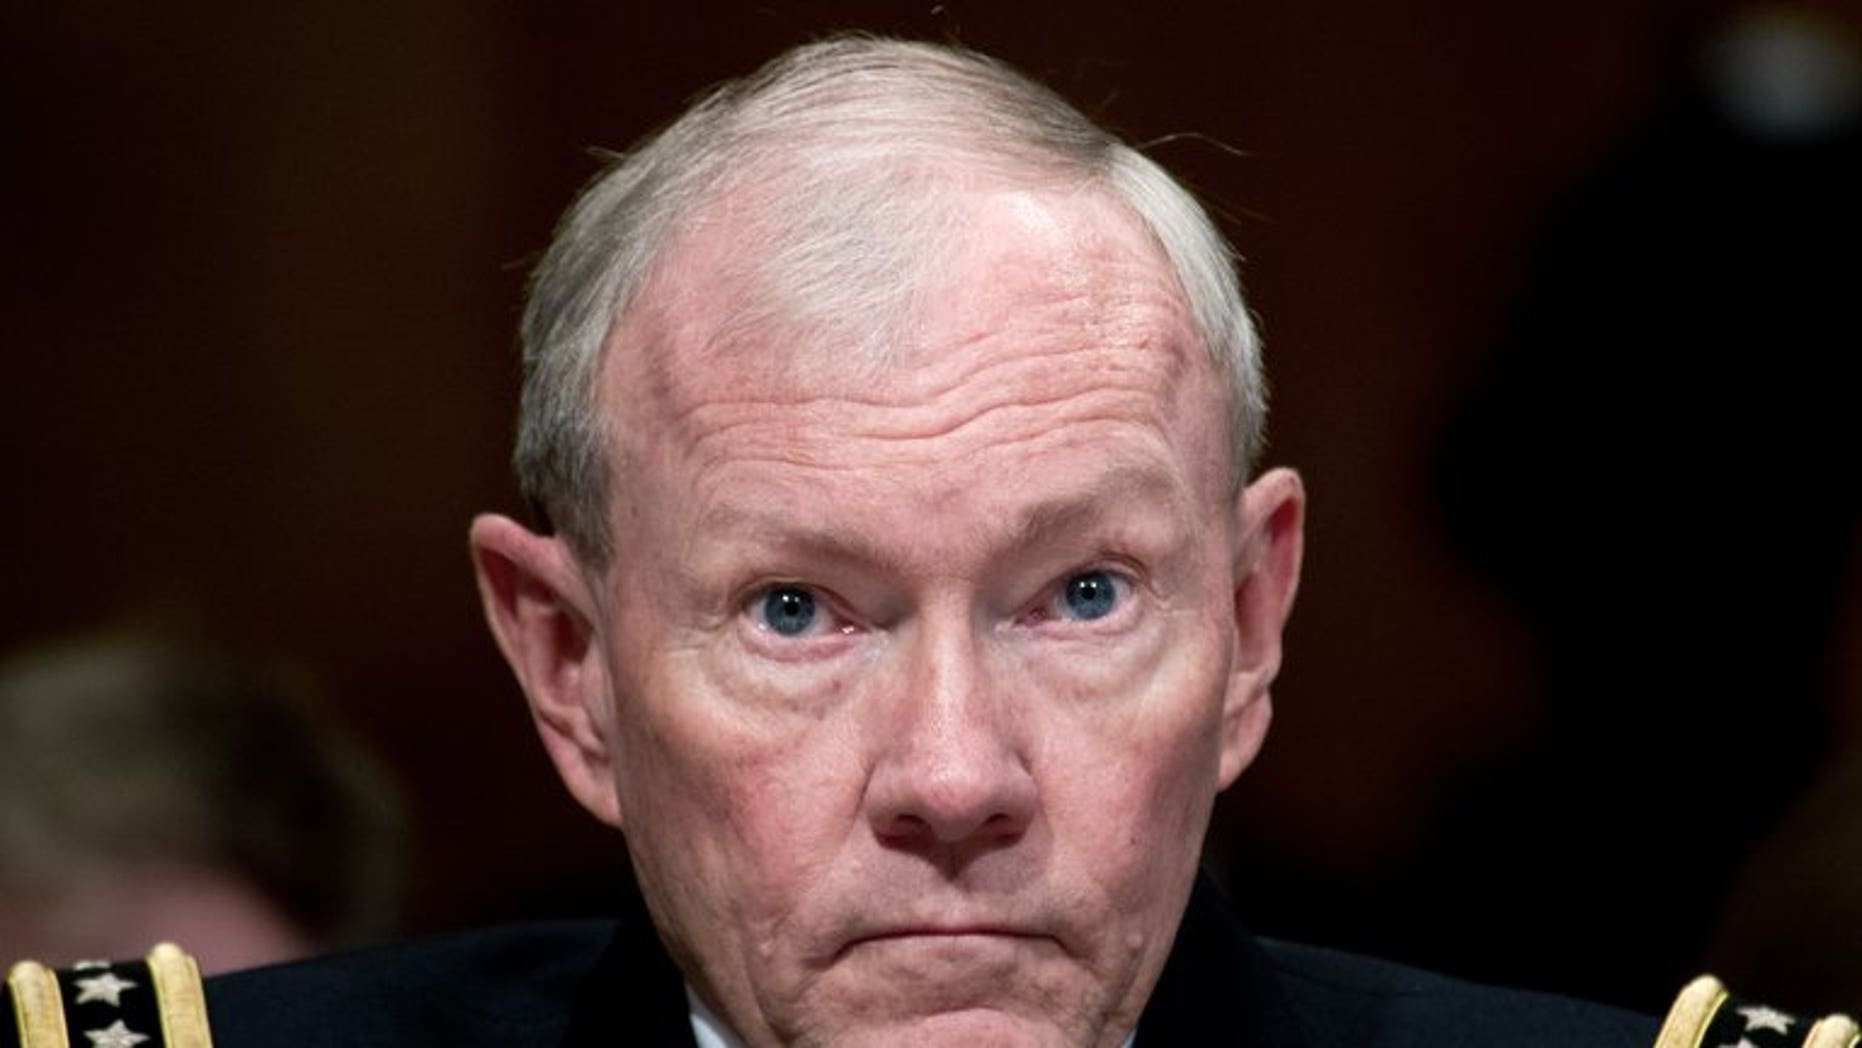 US army chief General Martin Dempsey testifies at a Senate Budget Committee hearing on Capitol Hill in Washington, on June 12, 2013. Dempsey has visited Amman to discuss ways to help the Jordanian military tackle fallout from the Syrian conflict.